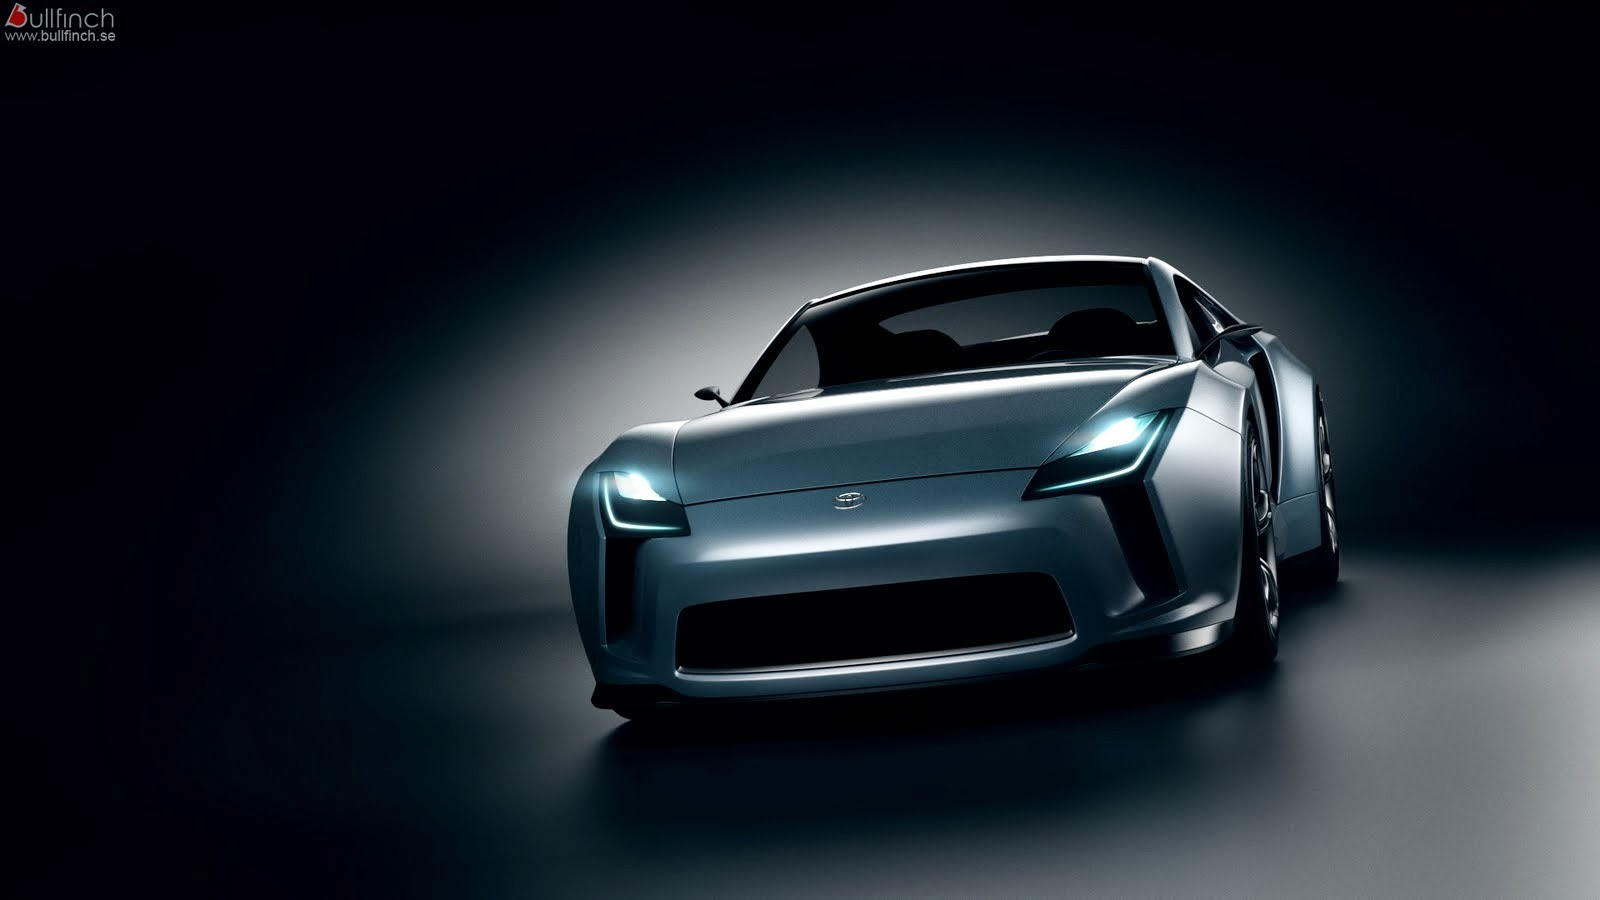 toyota supra 2014 widescreen wallpapers hd and make your desktop cool 1600x900